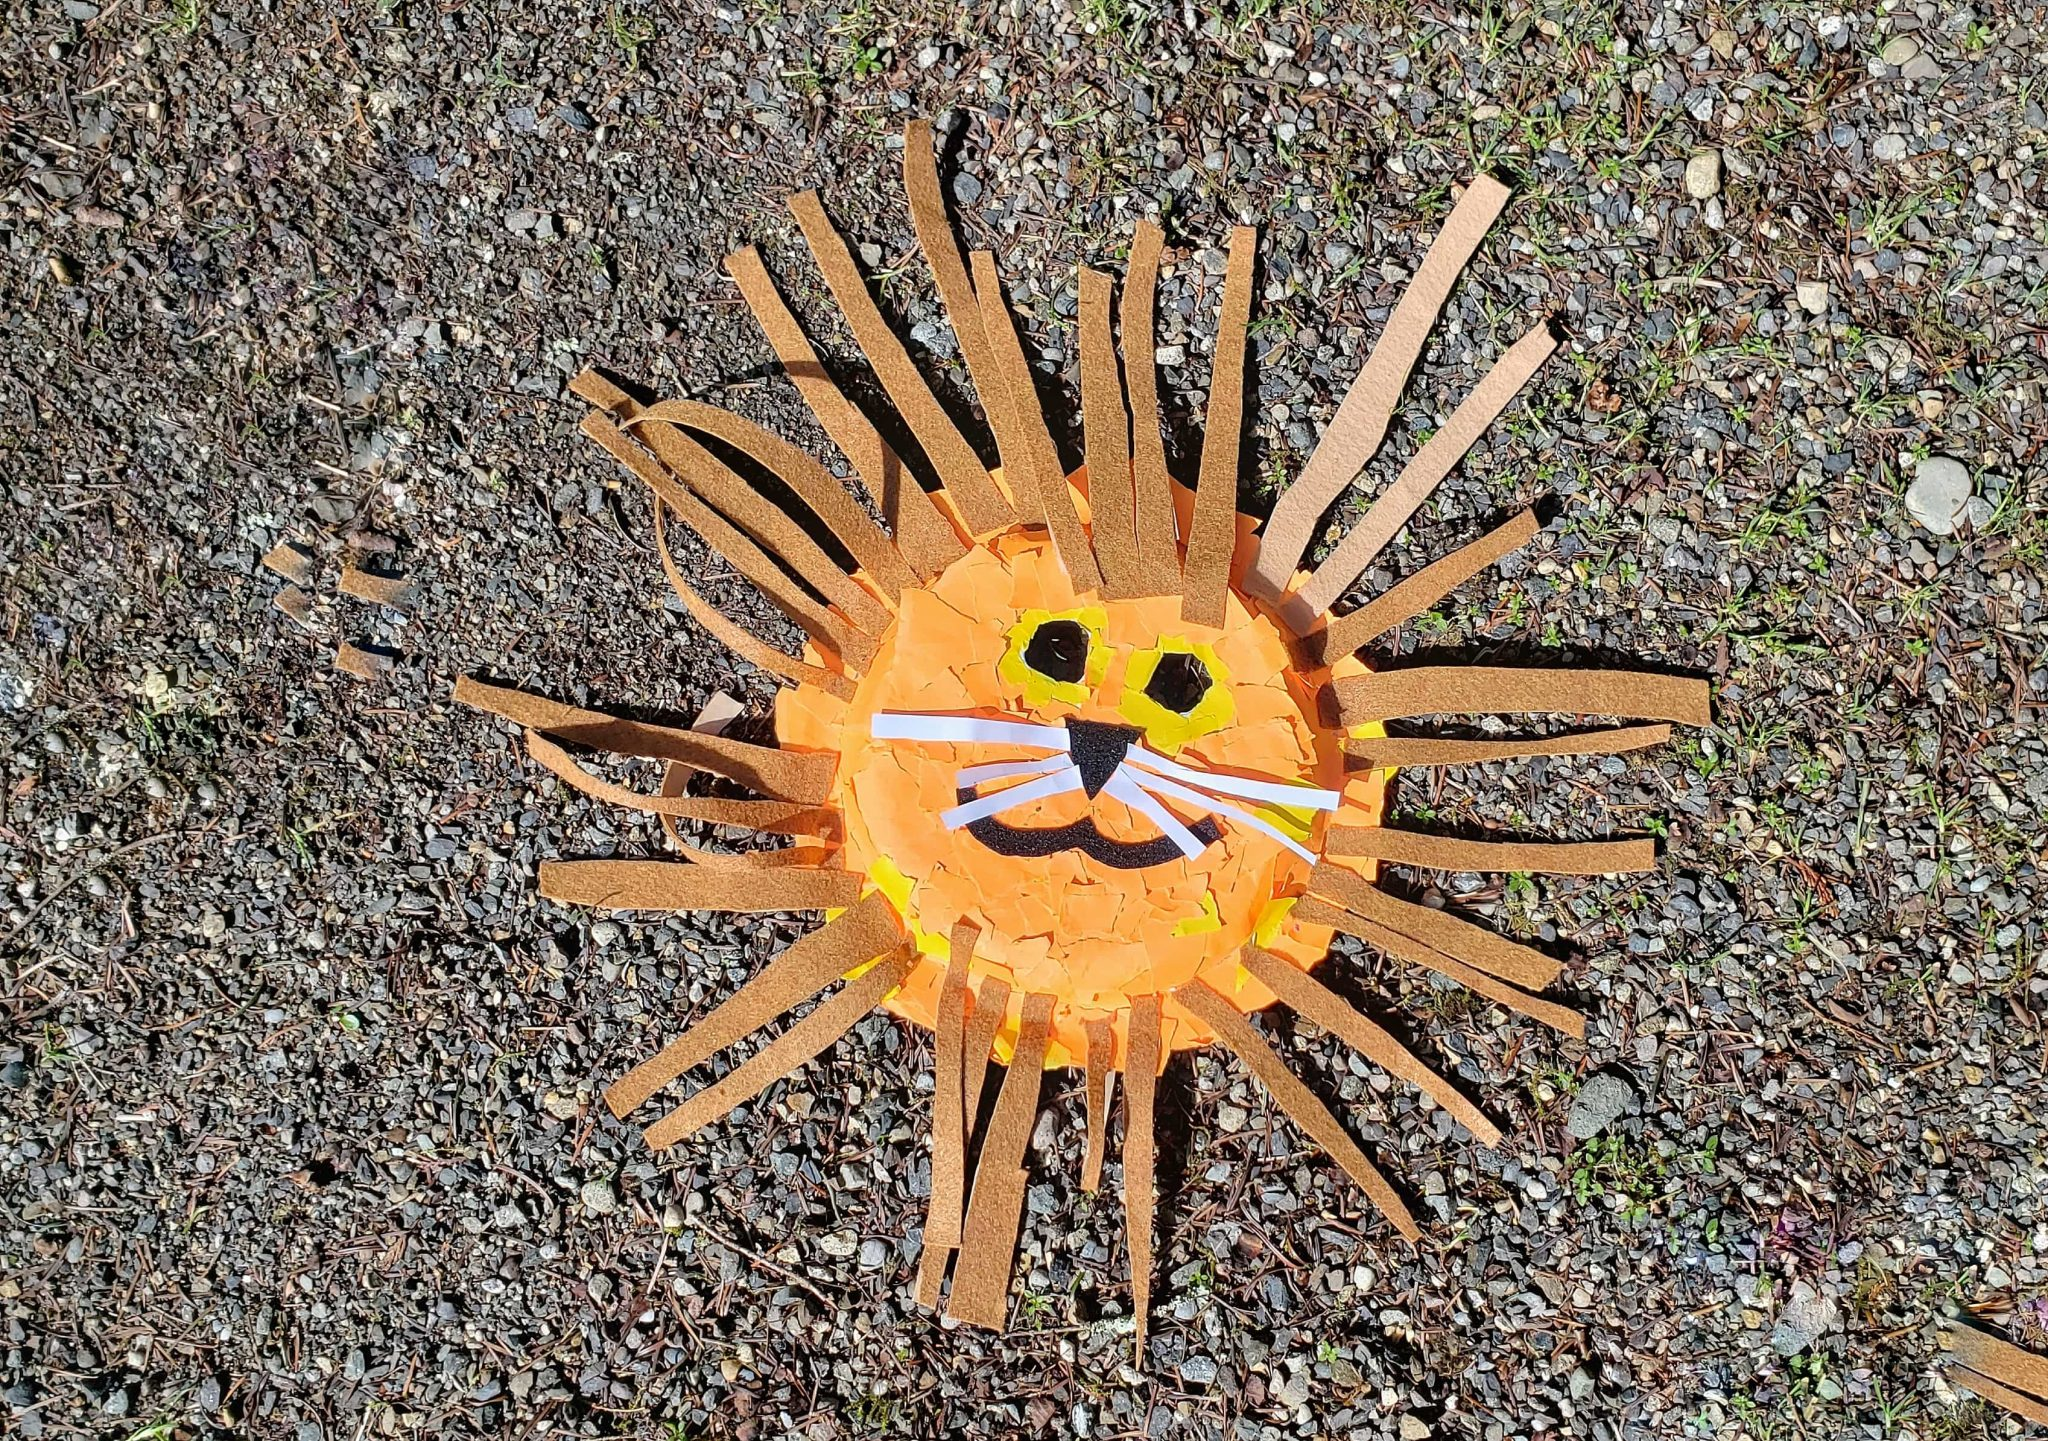 Need a fun kids craft? Check out this lion mask paper plate. This tutorial on how to make a paper plate lion mask is simple and fun for a rainy day kids activity.